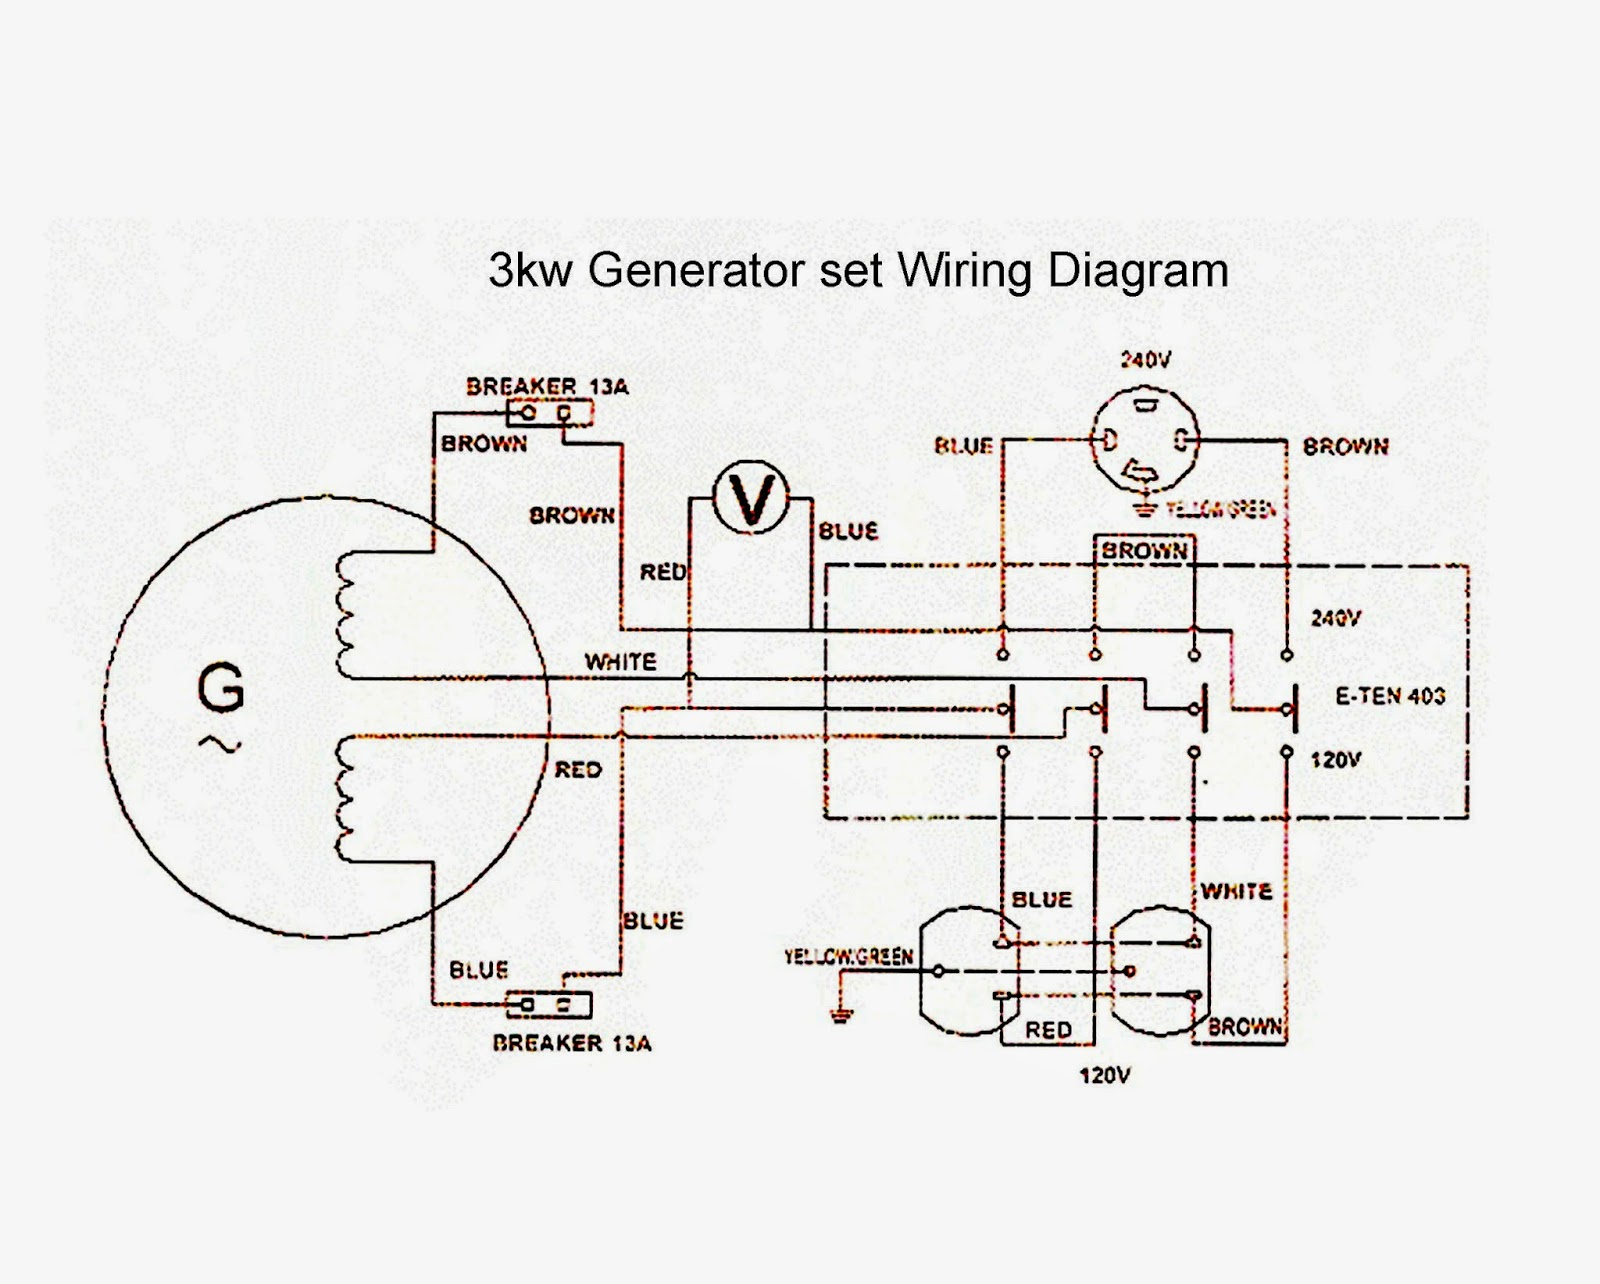 Wire Diagram Creator Free Wiring For You 12 Volt Starter Dodge July 2014 Electrical Winding Diagrams Draw Online